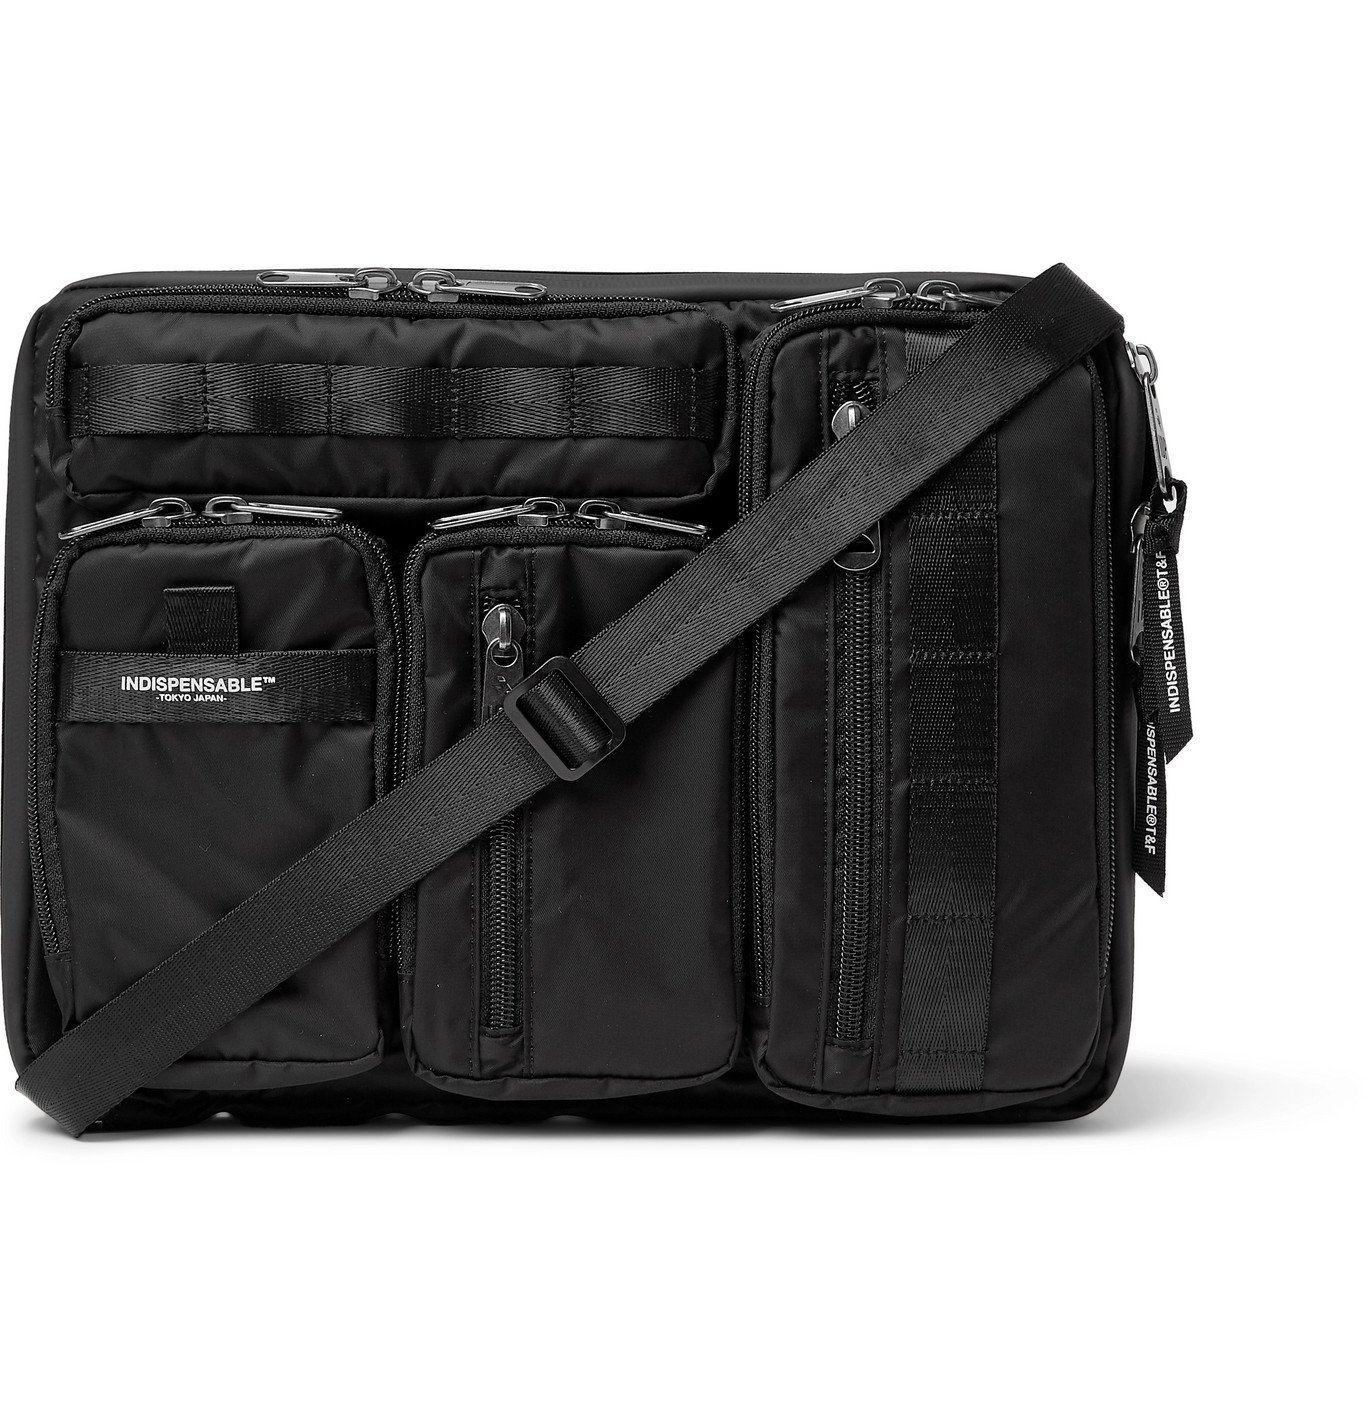 Photo: Indispensable - Grosgrain-Trimmed ECONYL Laptop Case - Black